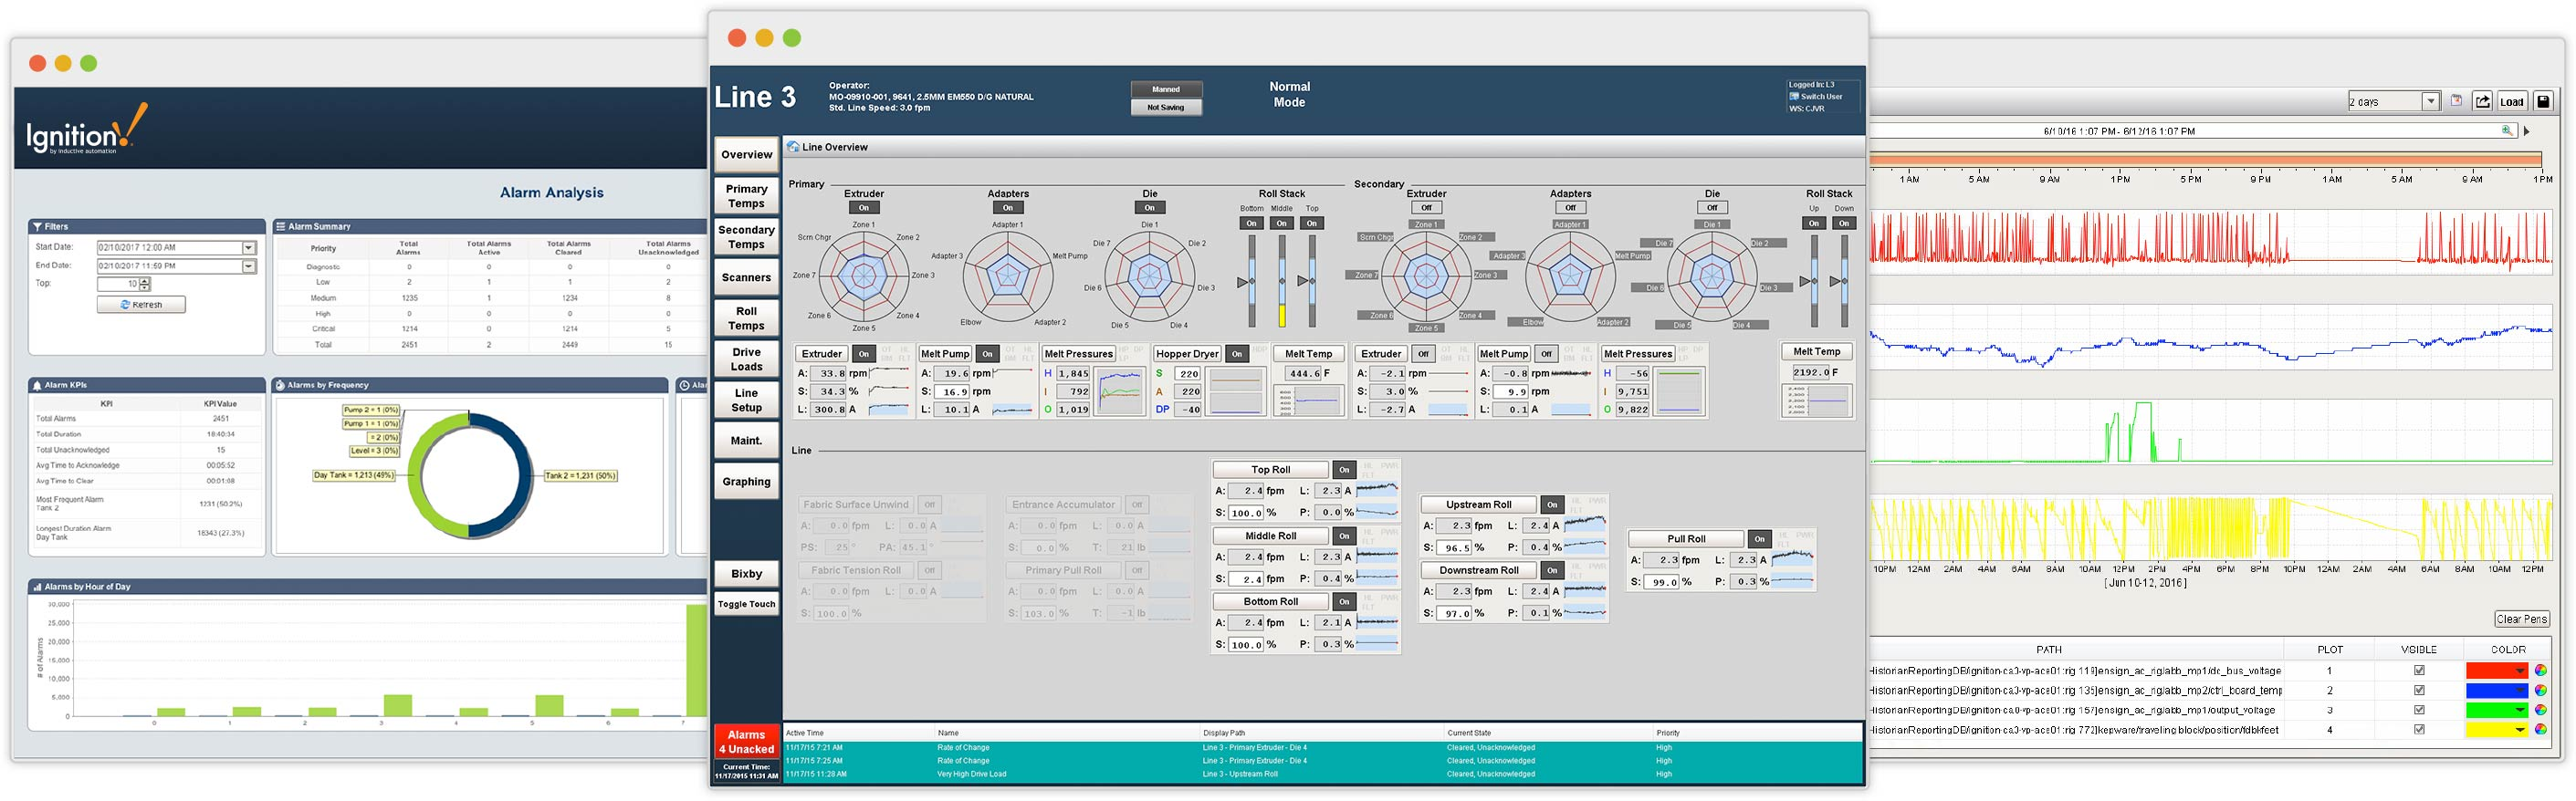 Powerful Control & Data-Visualization Software | Ignition SCADA